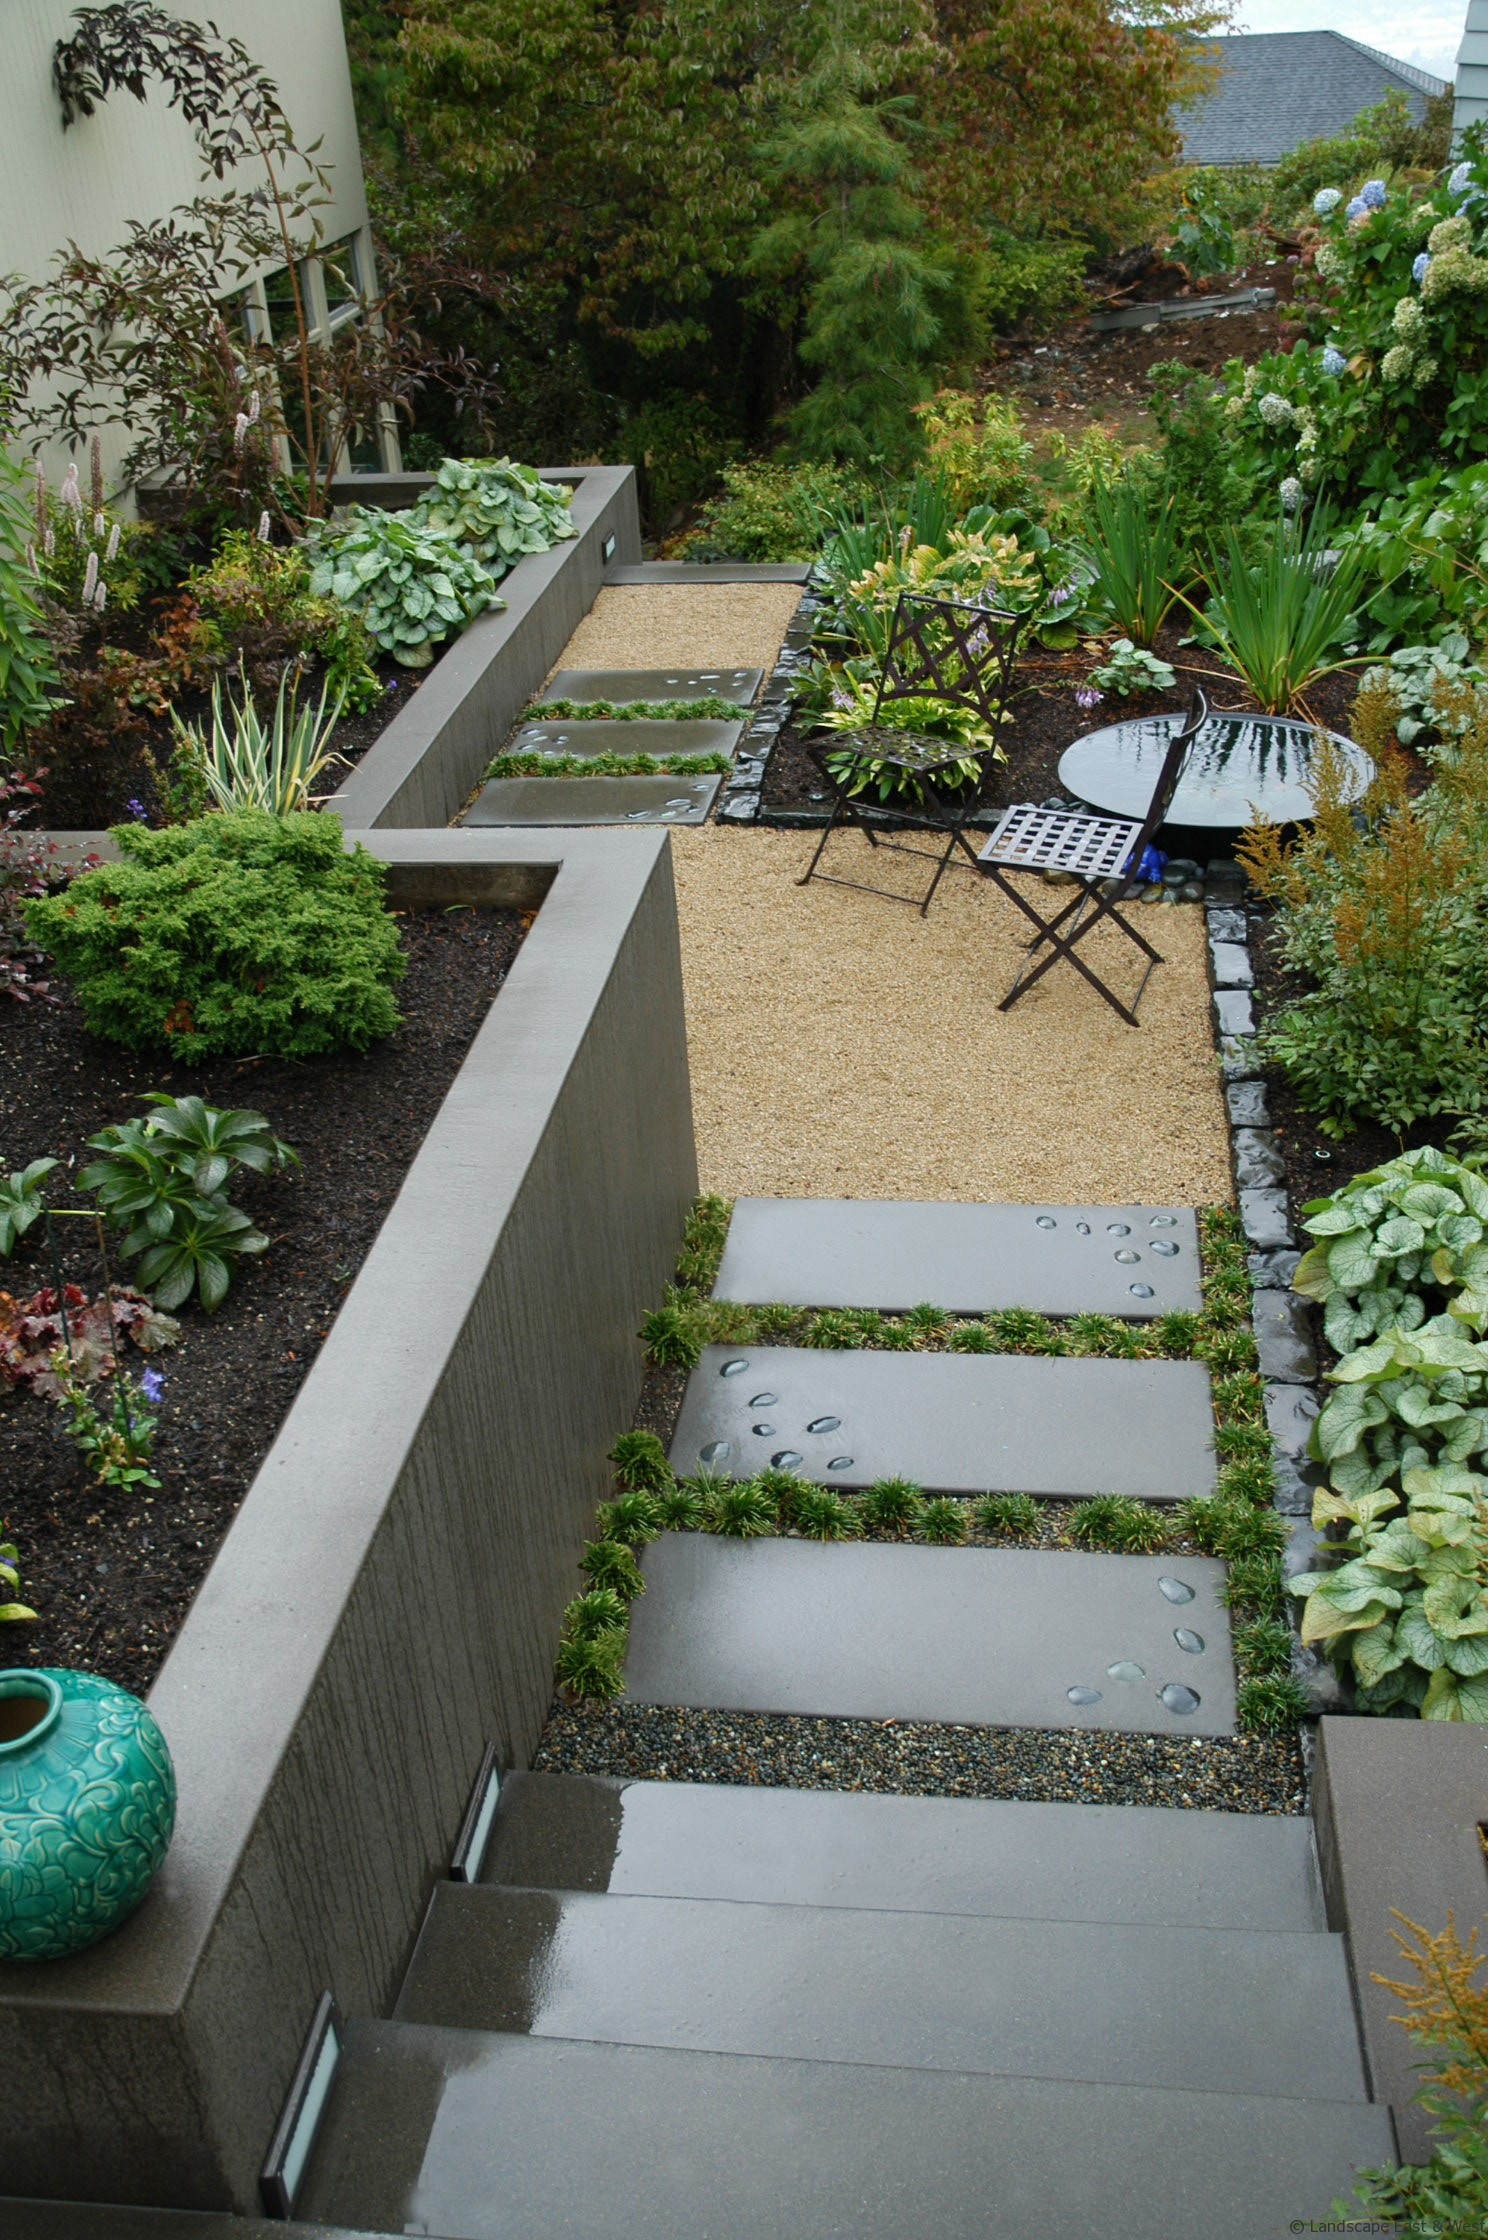 Landscape Retaining Wall Design  Permitting Tips from Portland & Hillsboro Landscapers